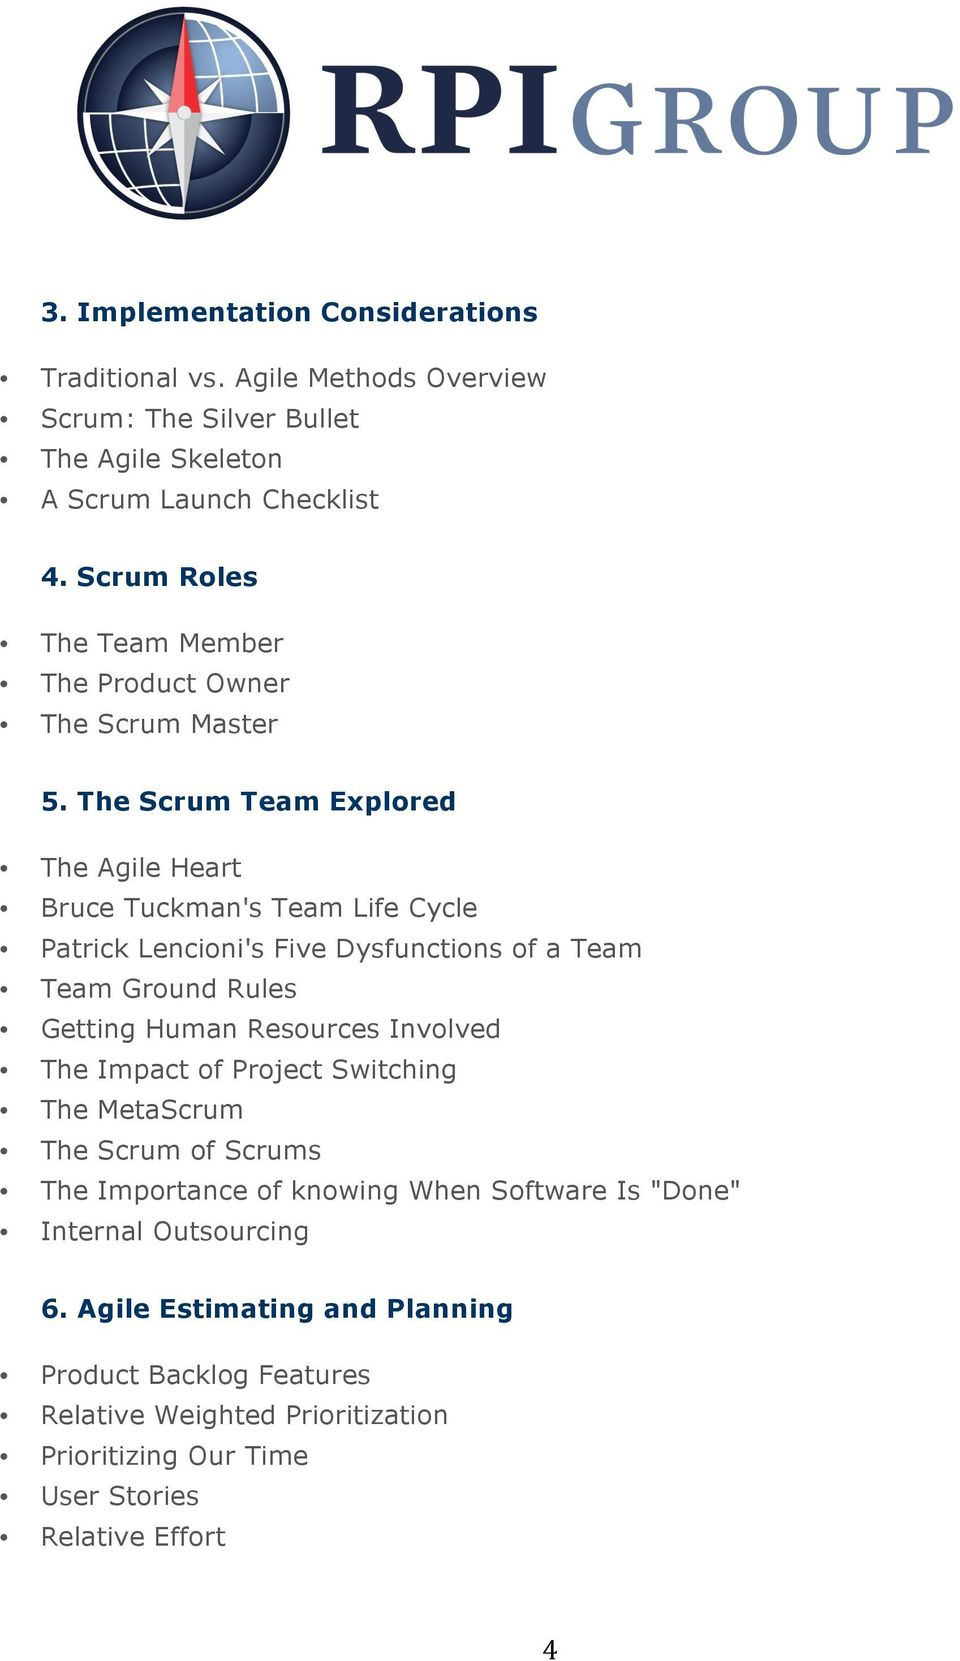 The Scrum Team Explored The Agile Heart Bruce Tuckman's Team Life Cycle Patrick Lencioni's Five Dysfunctions of a Team Team Ground Rules Getting Human Resources